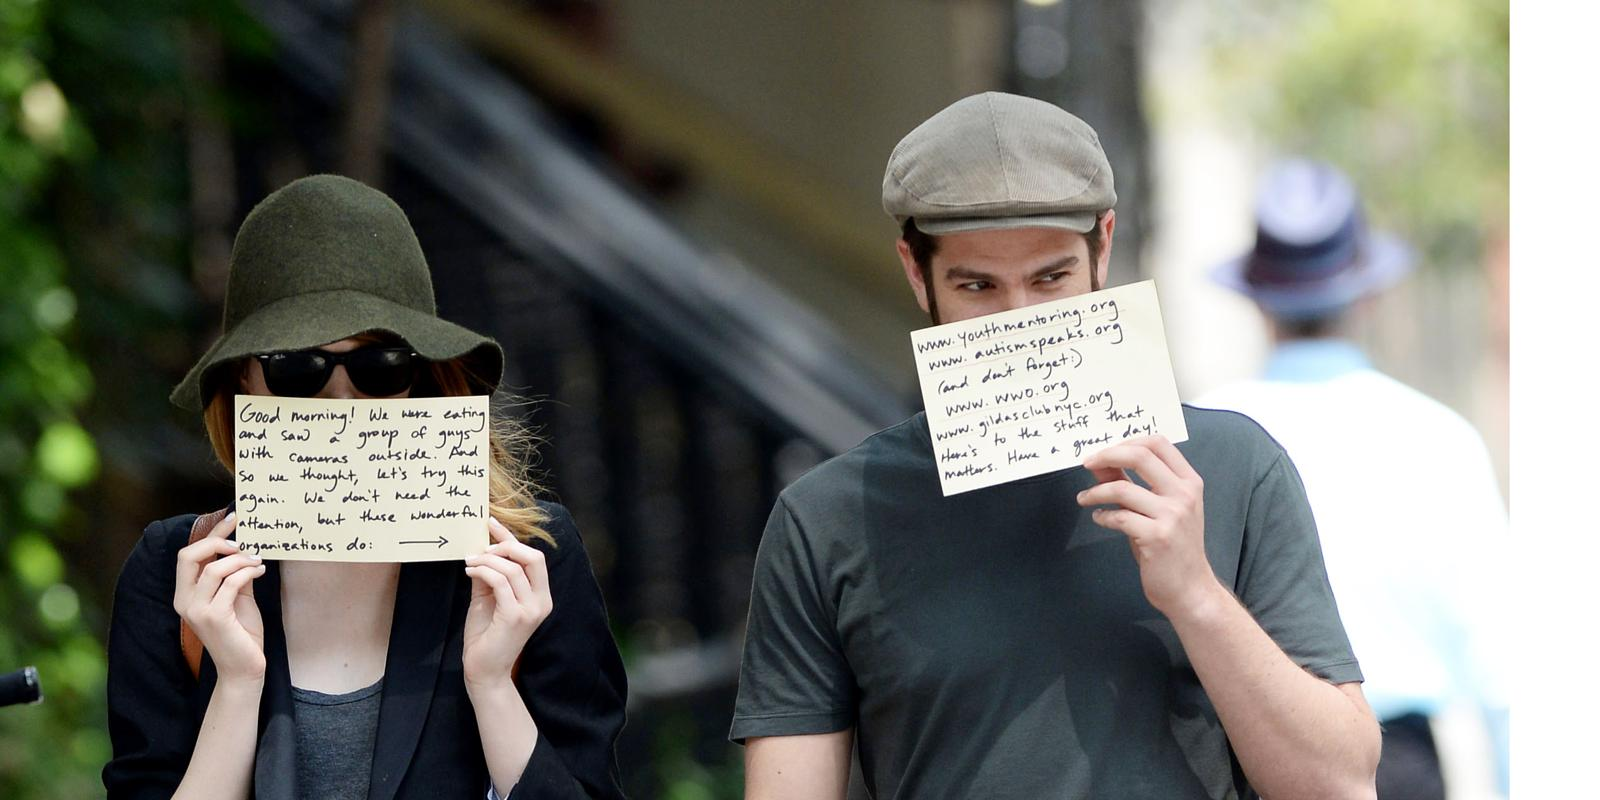 pics Andrew Garfield and Emma Stone Use Paparazzi to Promote Charities